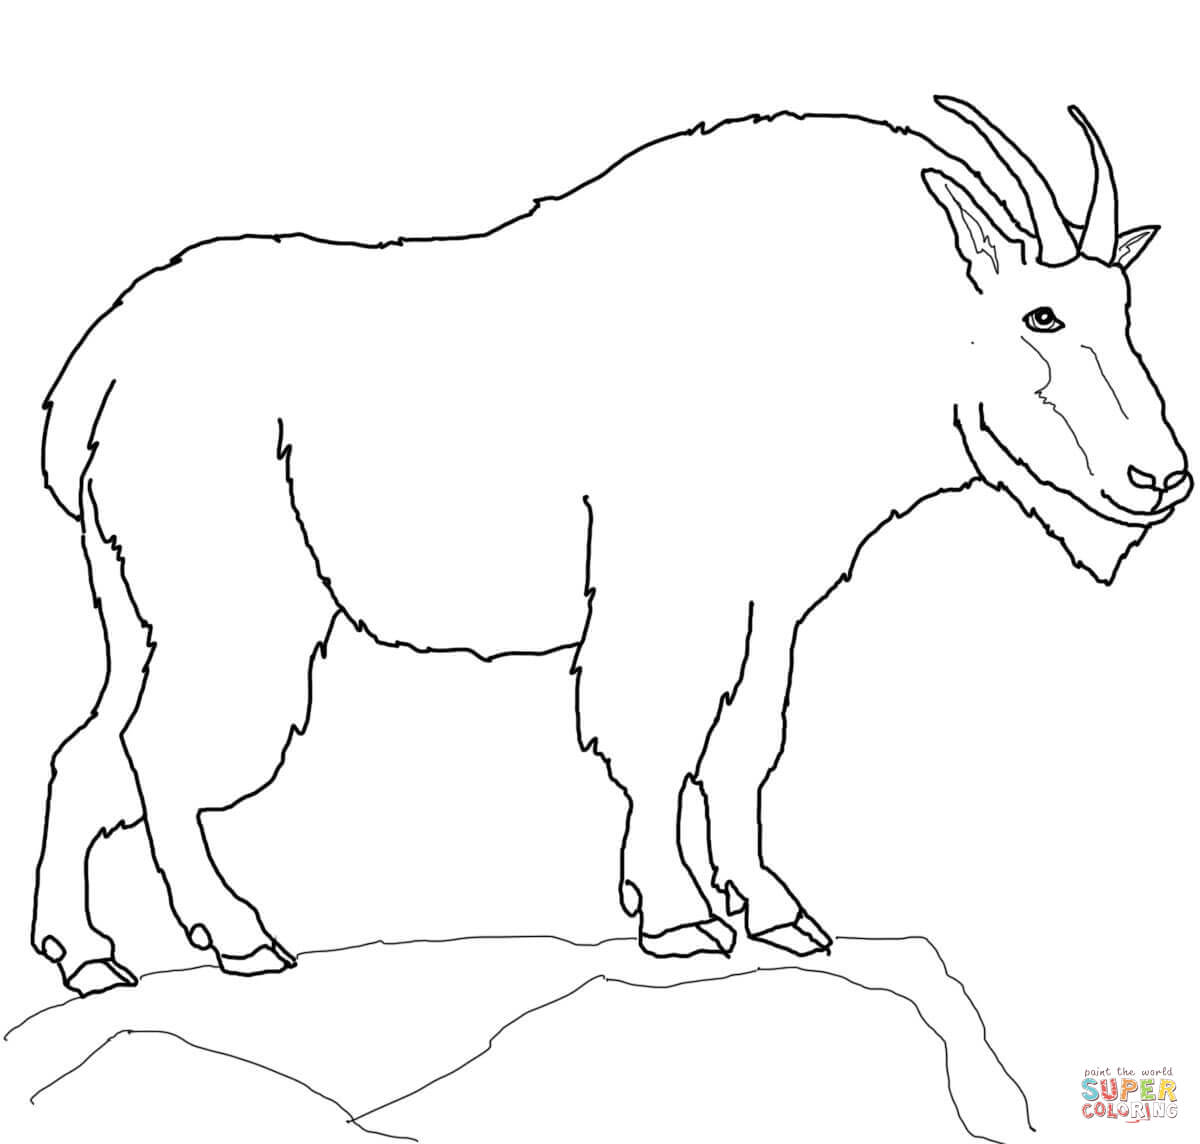 picture of a goat to color bleating goats 18 goat coloring pages and pictures print picture color of a to goat